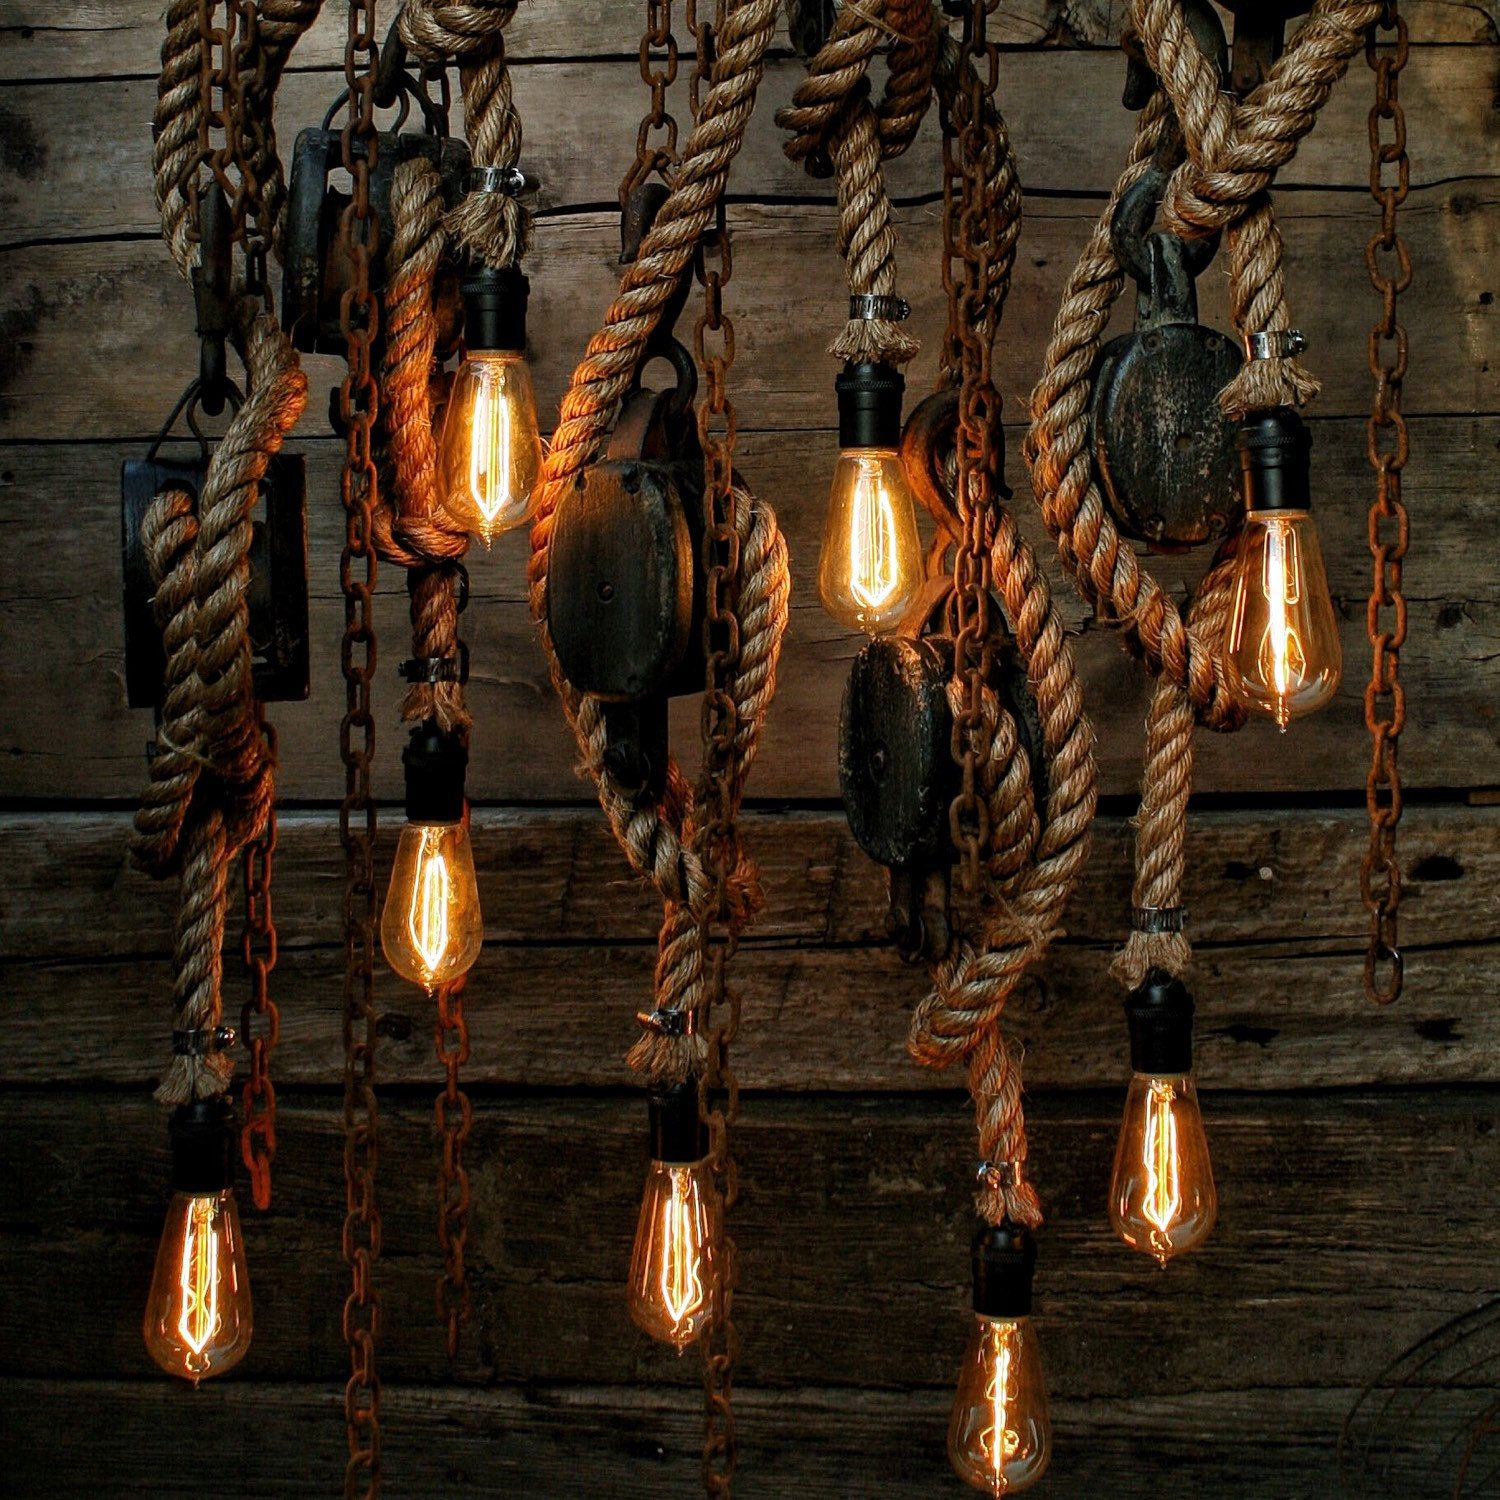 The set sail pendant light rustic wooden barn pulley lamp pulley light barn wood pendant light manila rope light rustic chandelier industrial aloadofball Choice Image